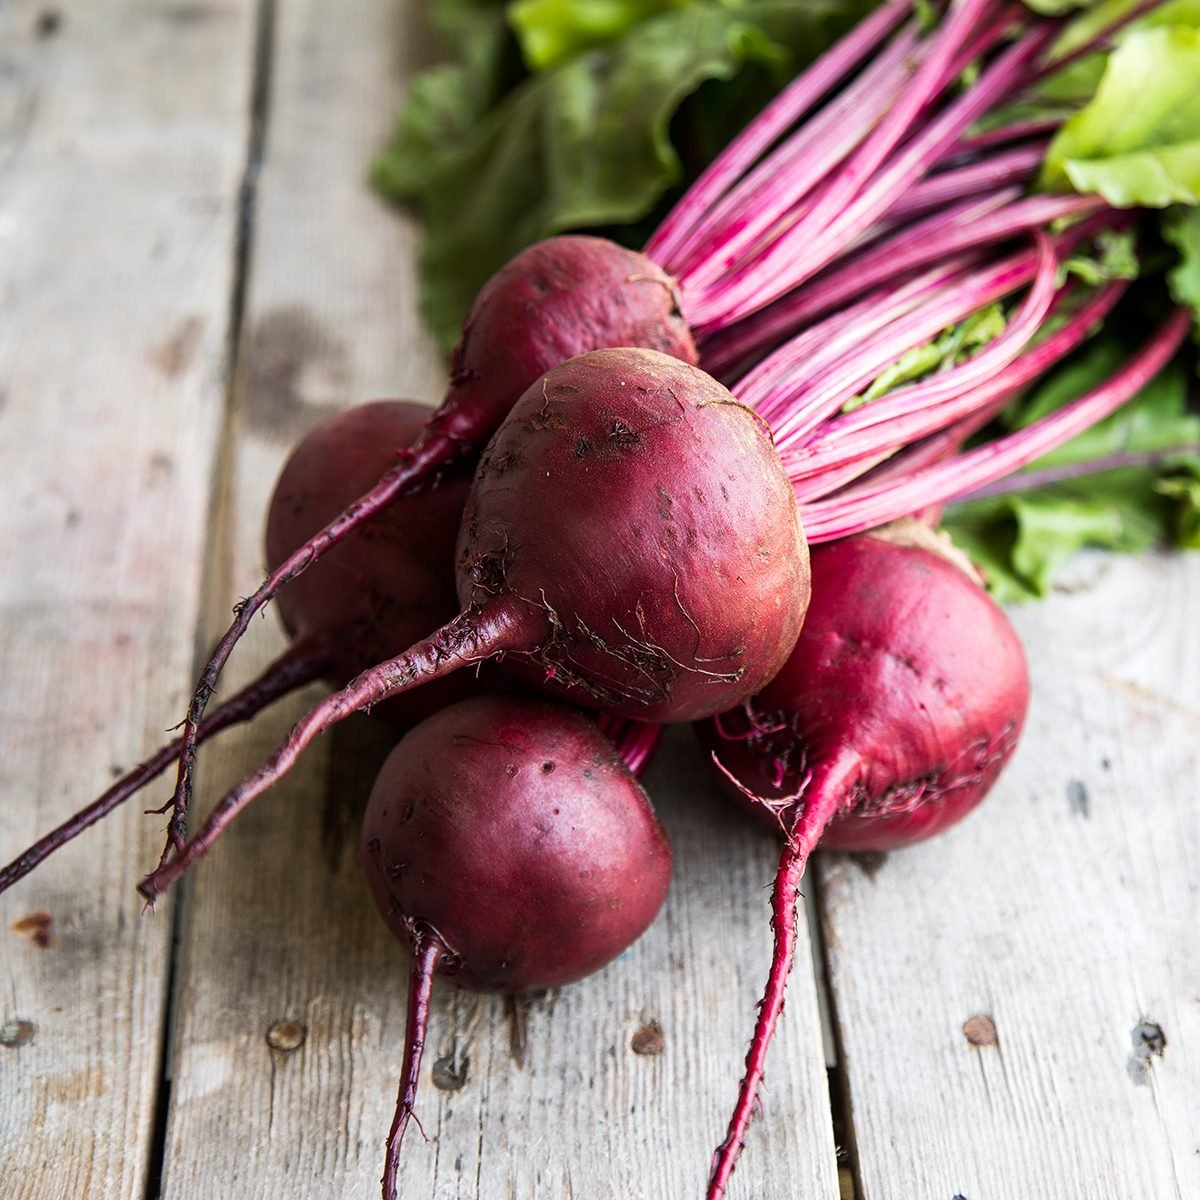 Red Beetroot with herbage green leaves on rustic background.